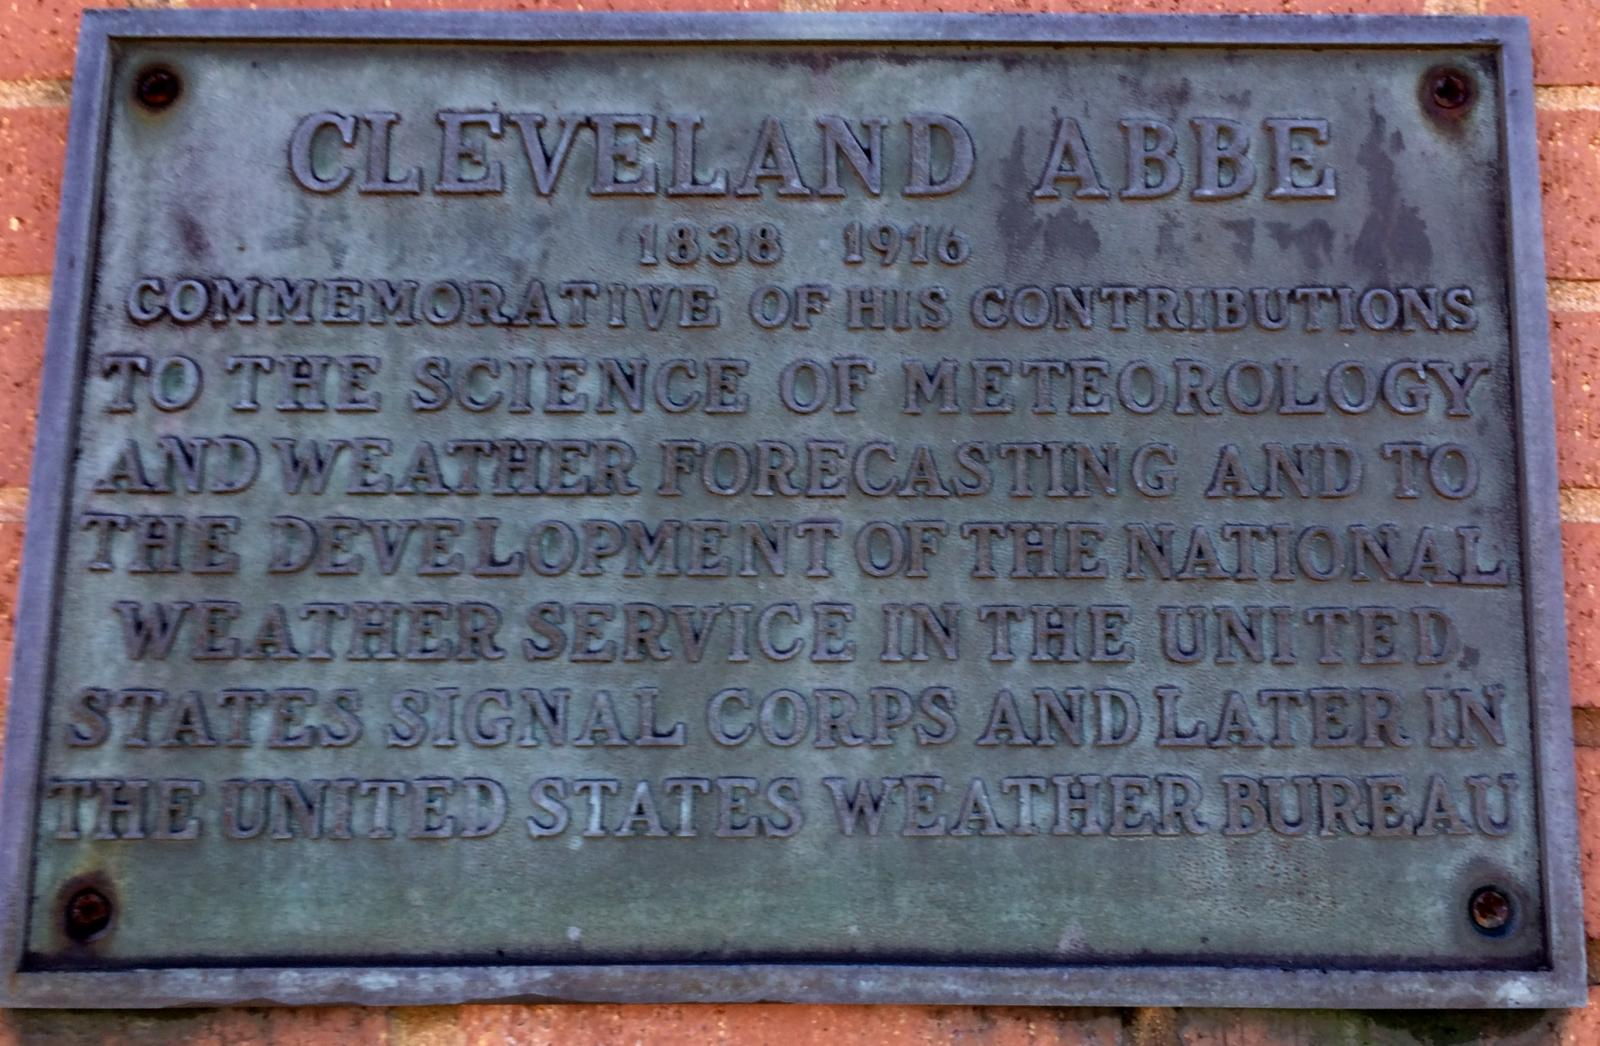 Abbe Plaque at NWS Wilmington